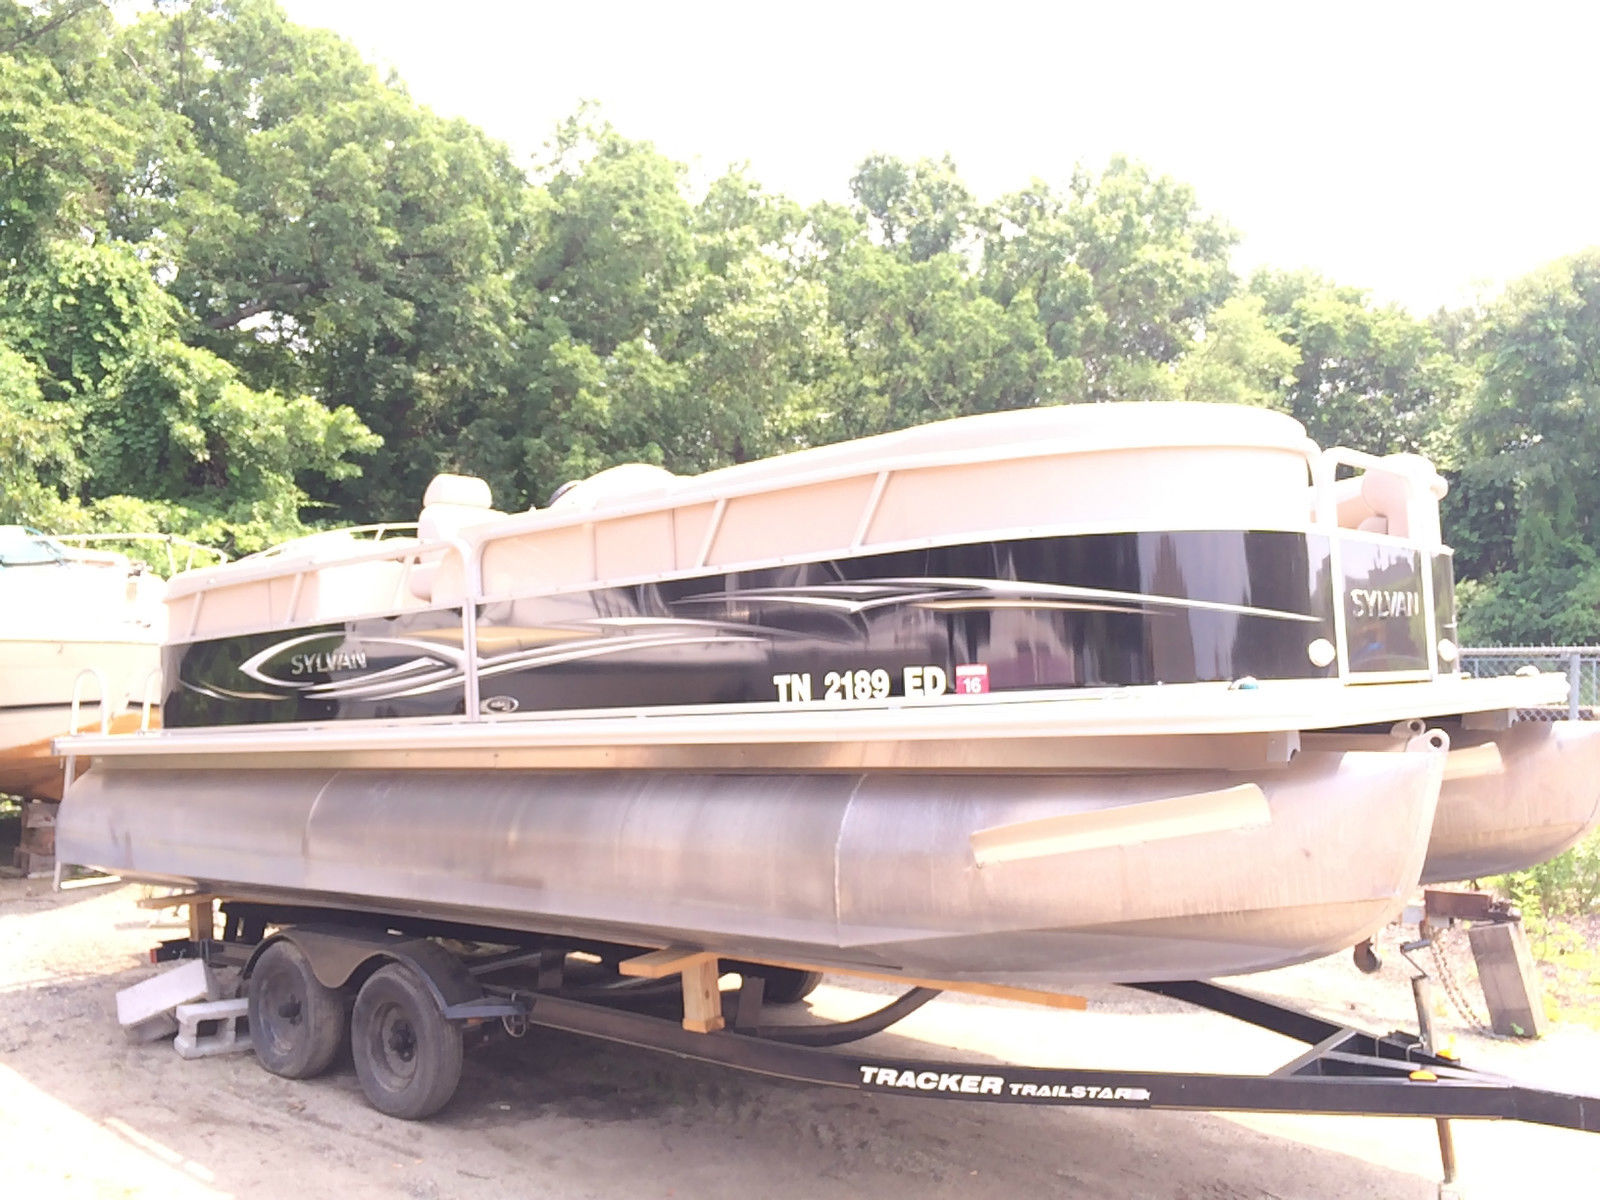 Sylvan mirage 8522 lz 2012 for sale for 325 boats from for Syvlan